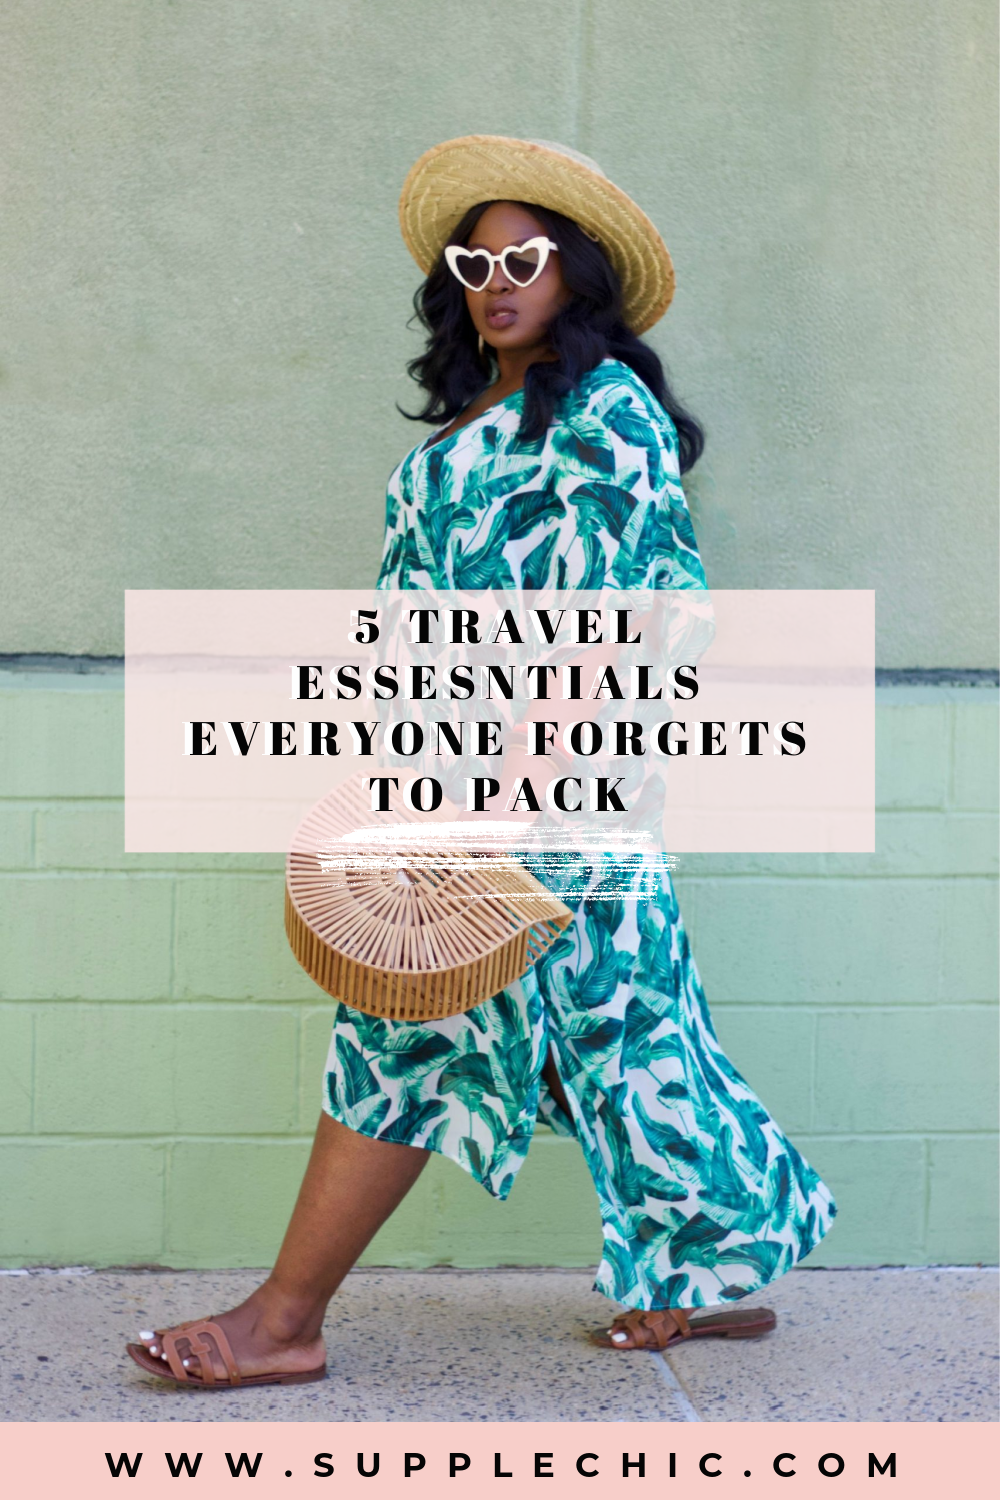 5 travel essentials everyone should pack from supplechic a fashion and lifestyle blog based out of Baltimore